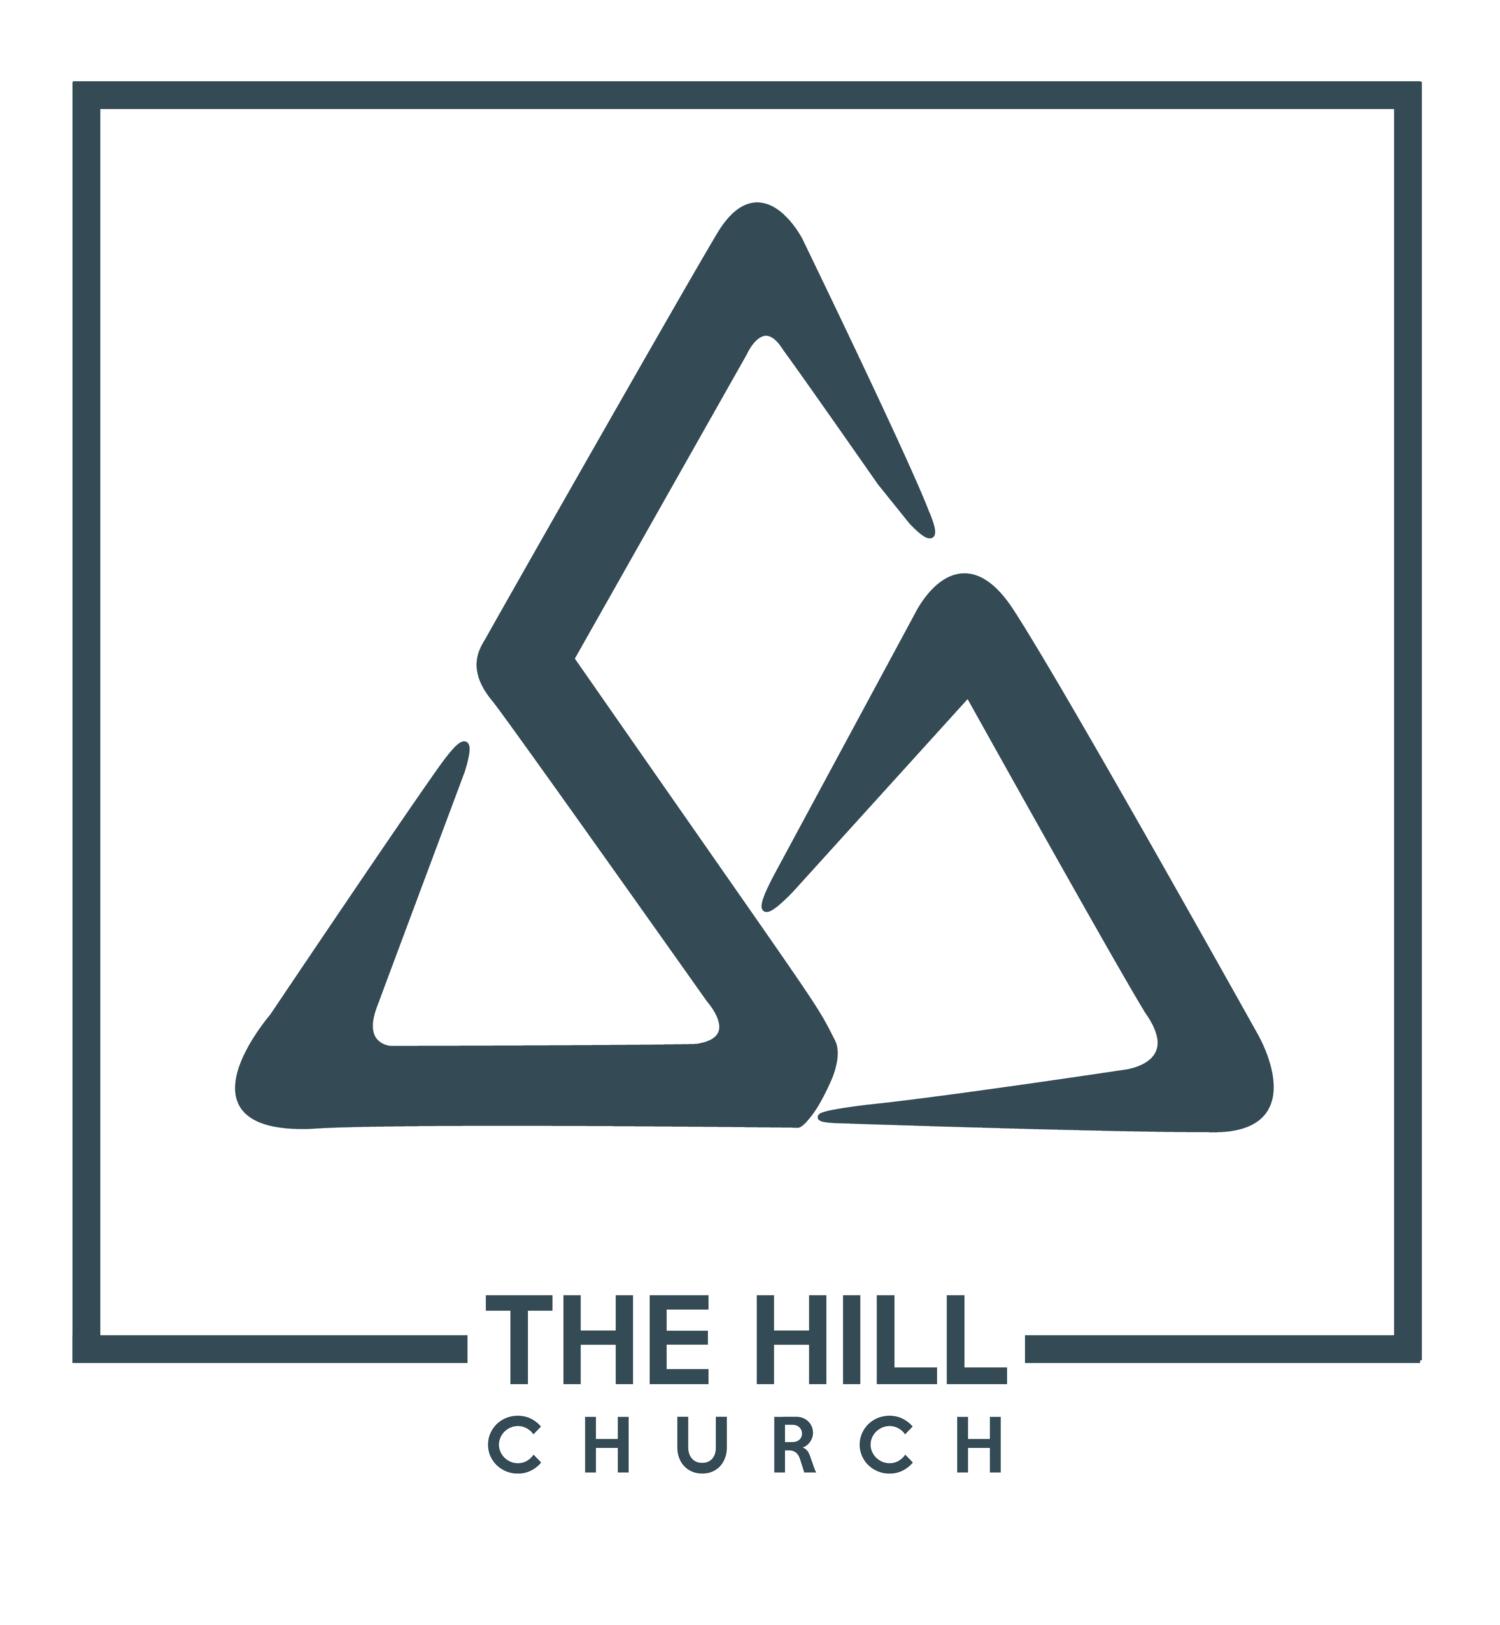 The Hill Church